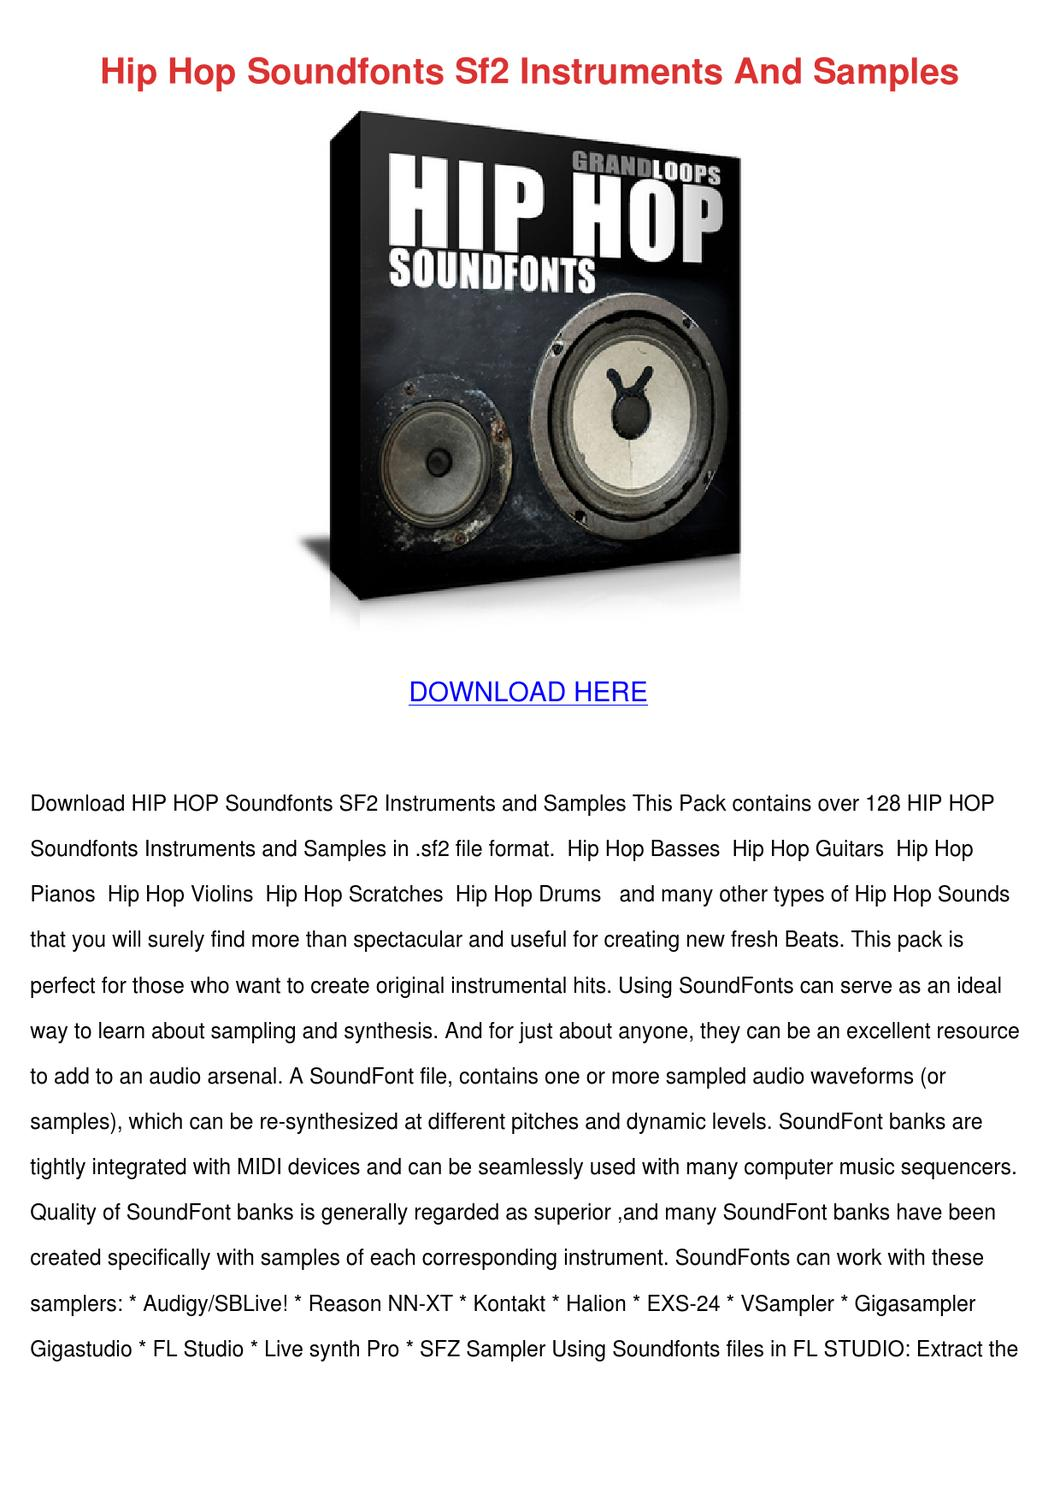 Hip Hop Soundfonts Sf2 Instruments And Sample by Reda Mccrady - issuu